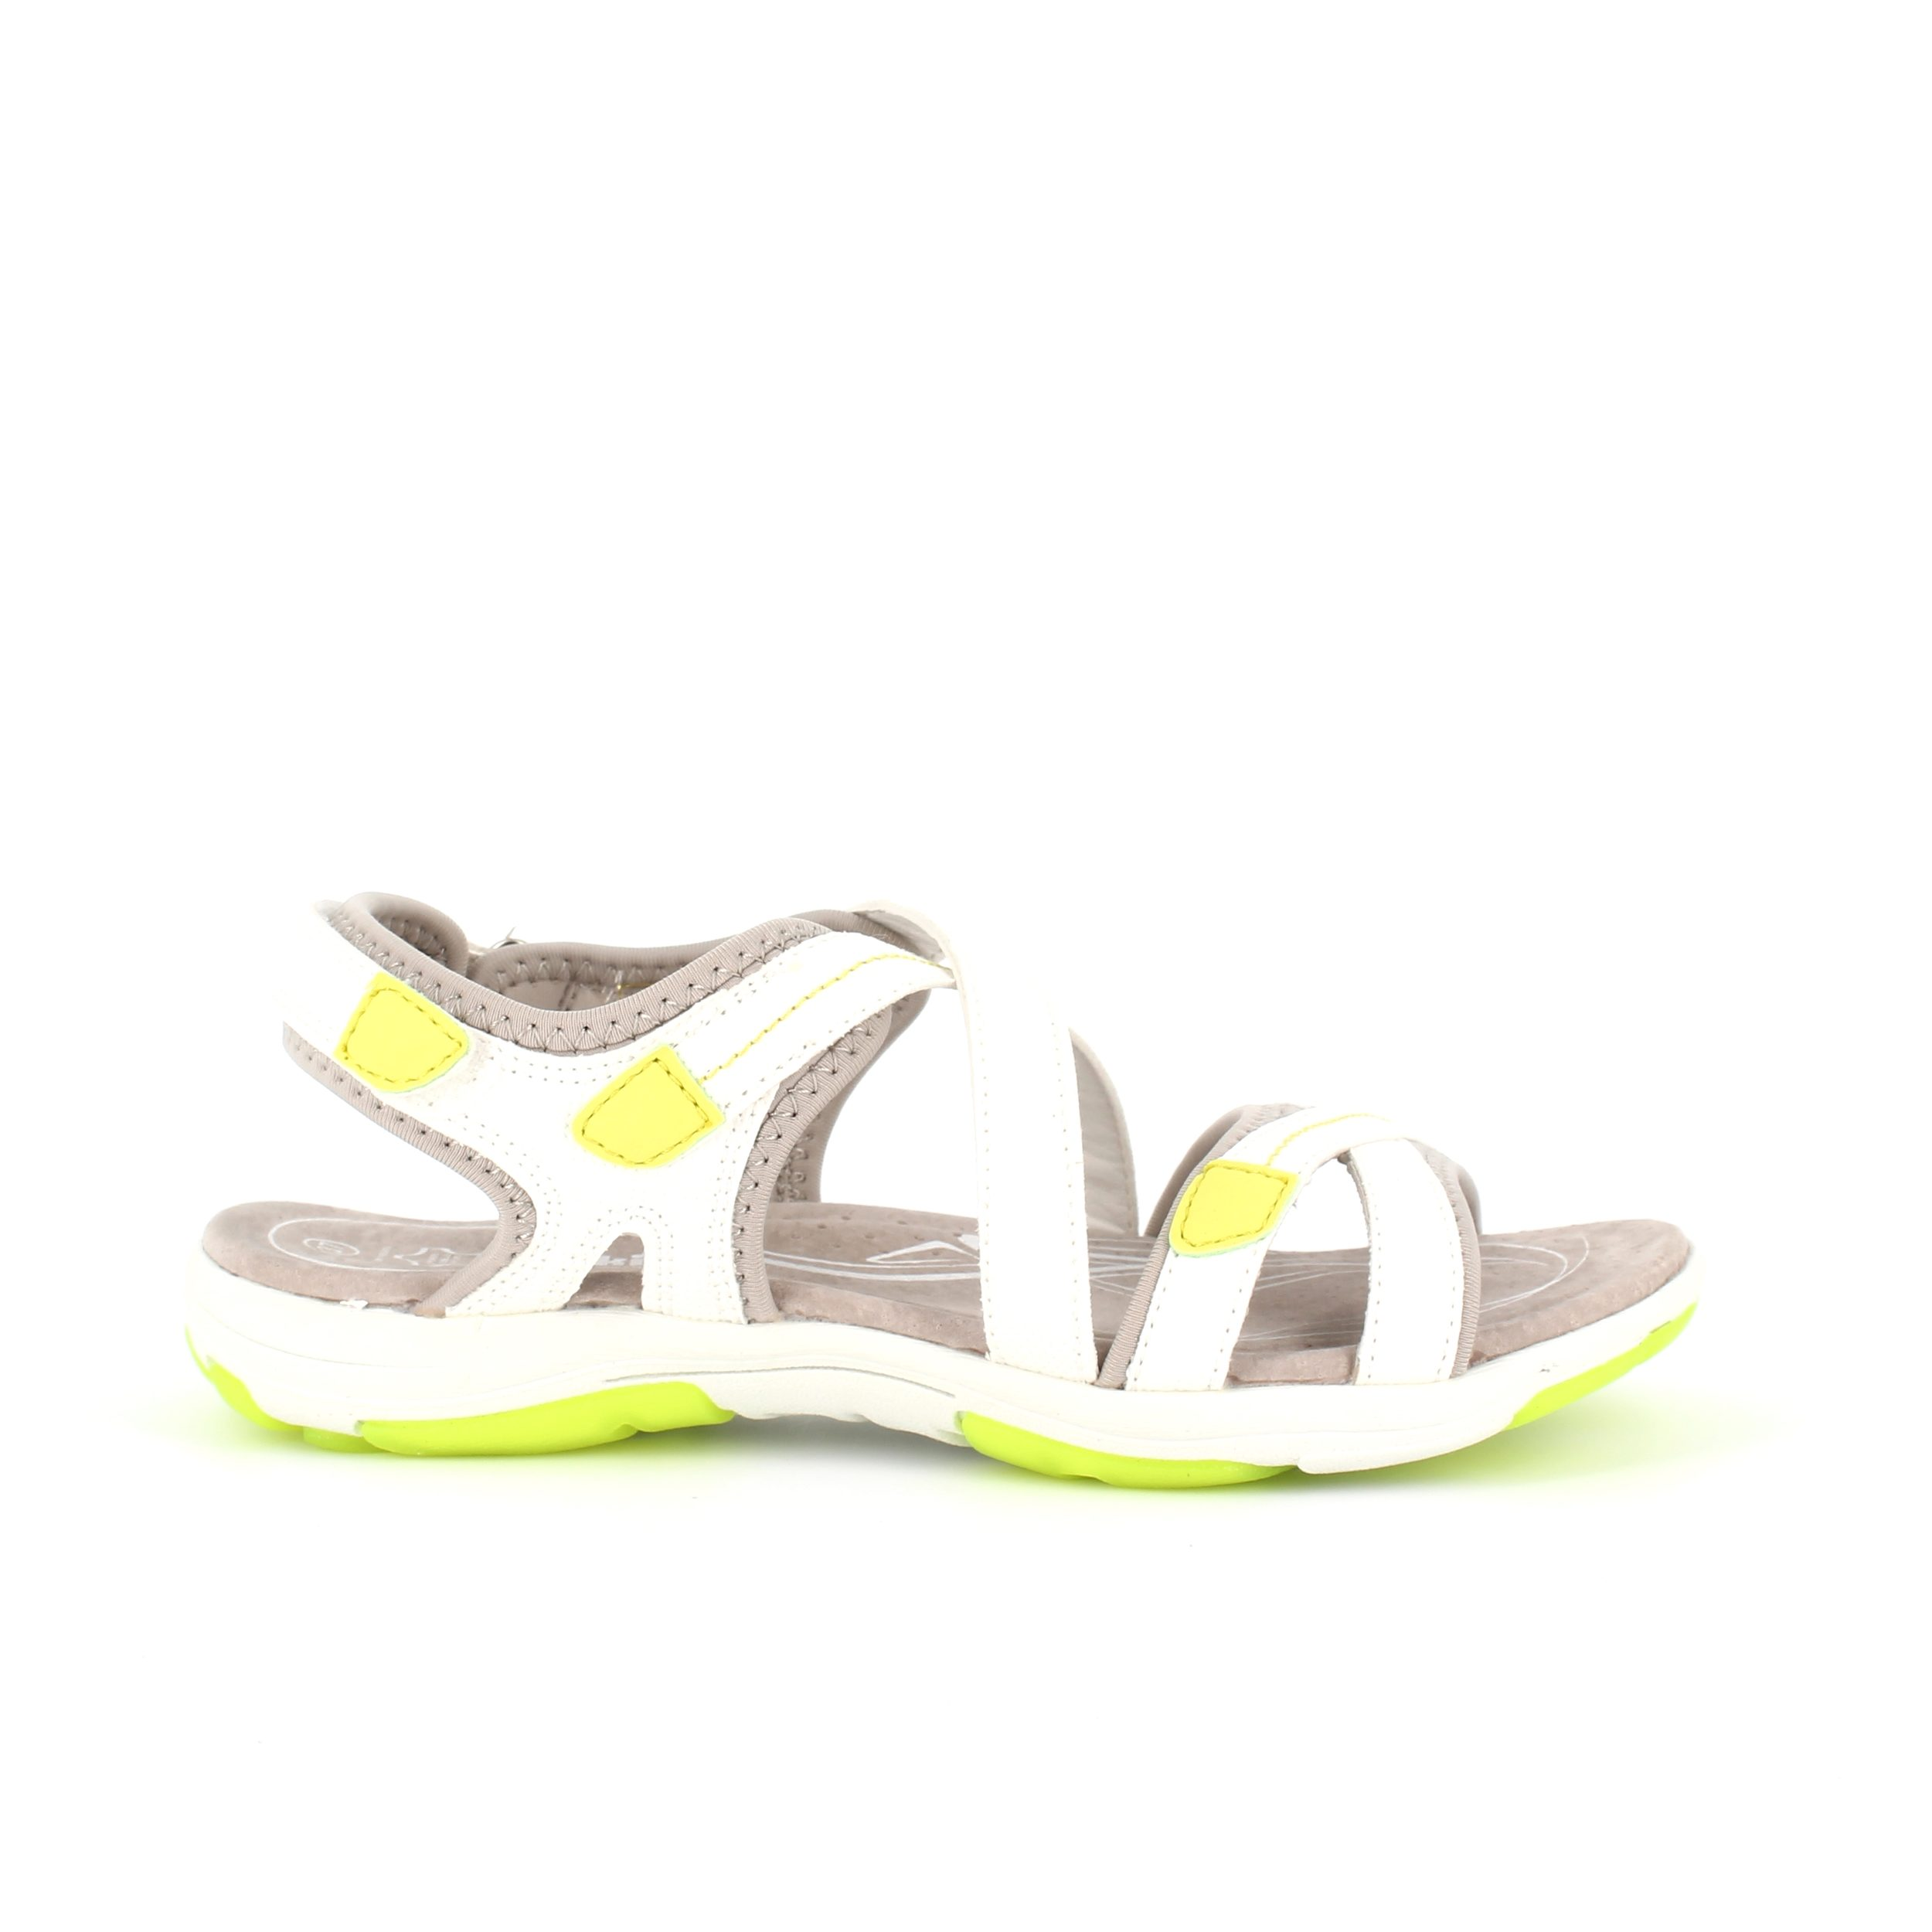 Image of   Smart sandal i frisk hvid og lime - 38